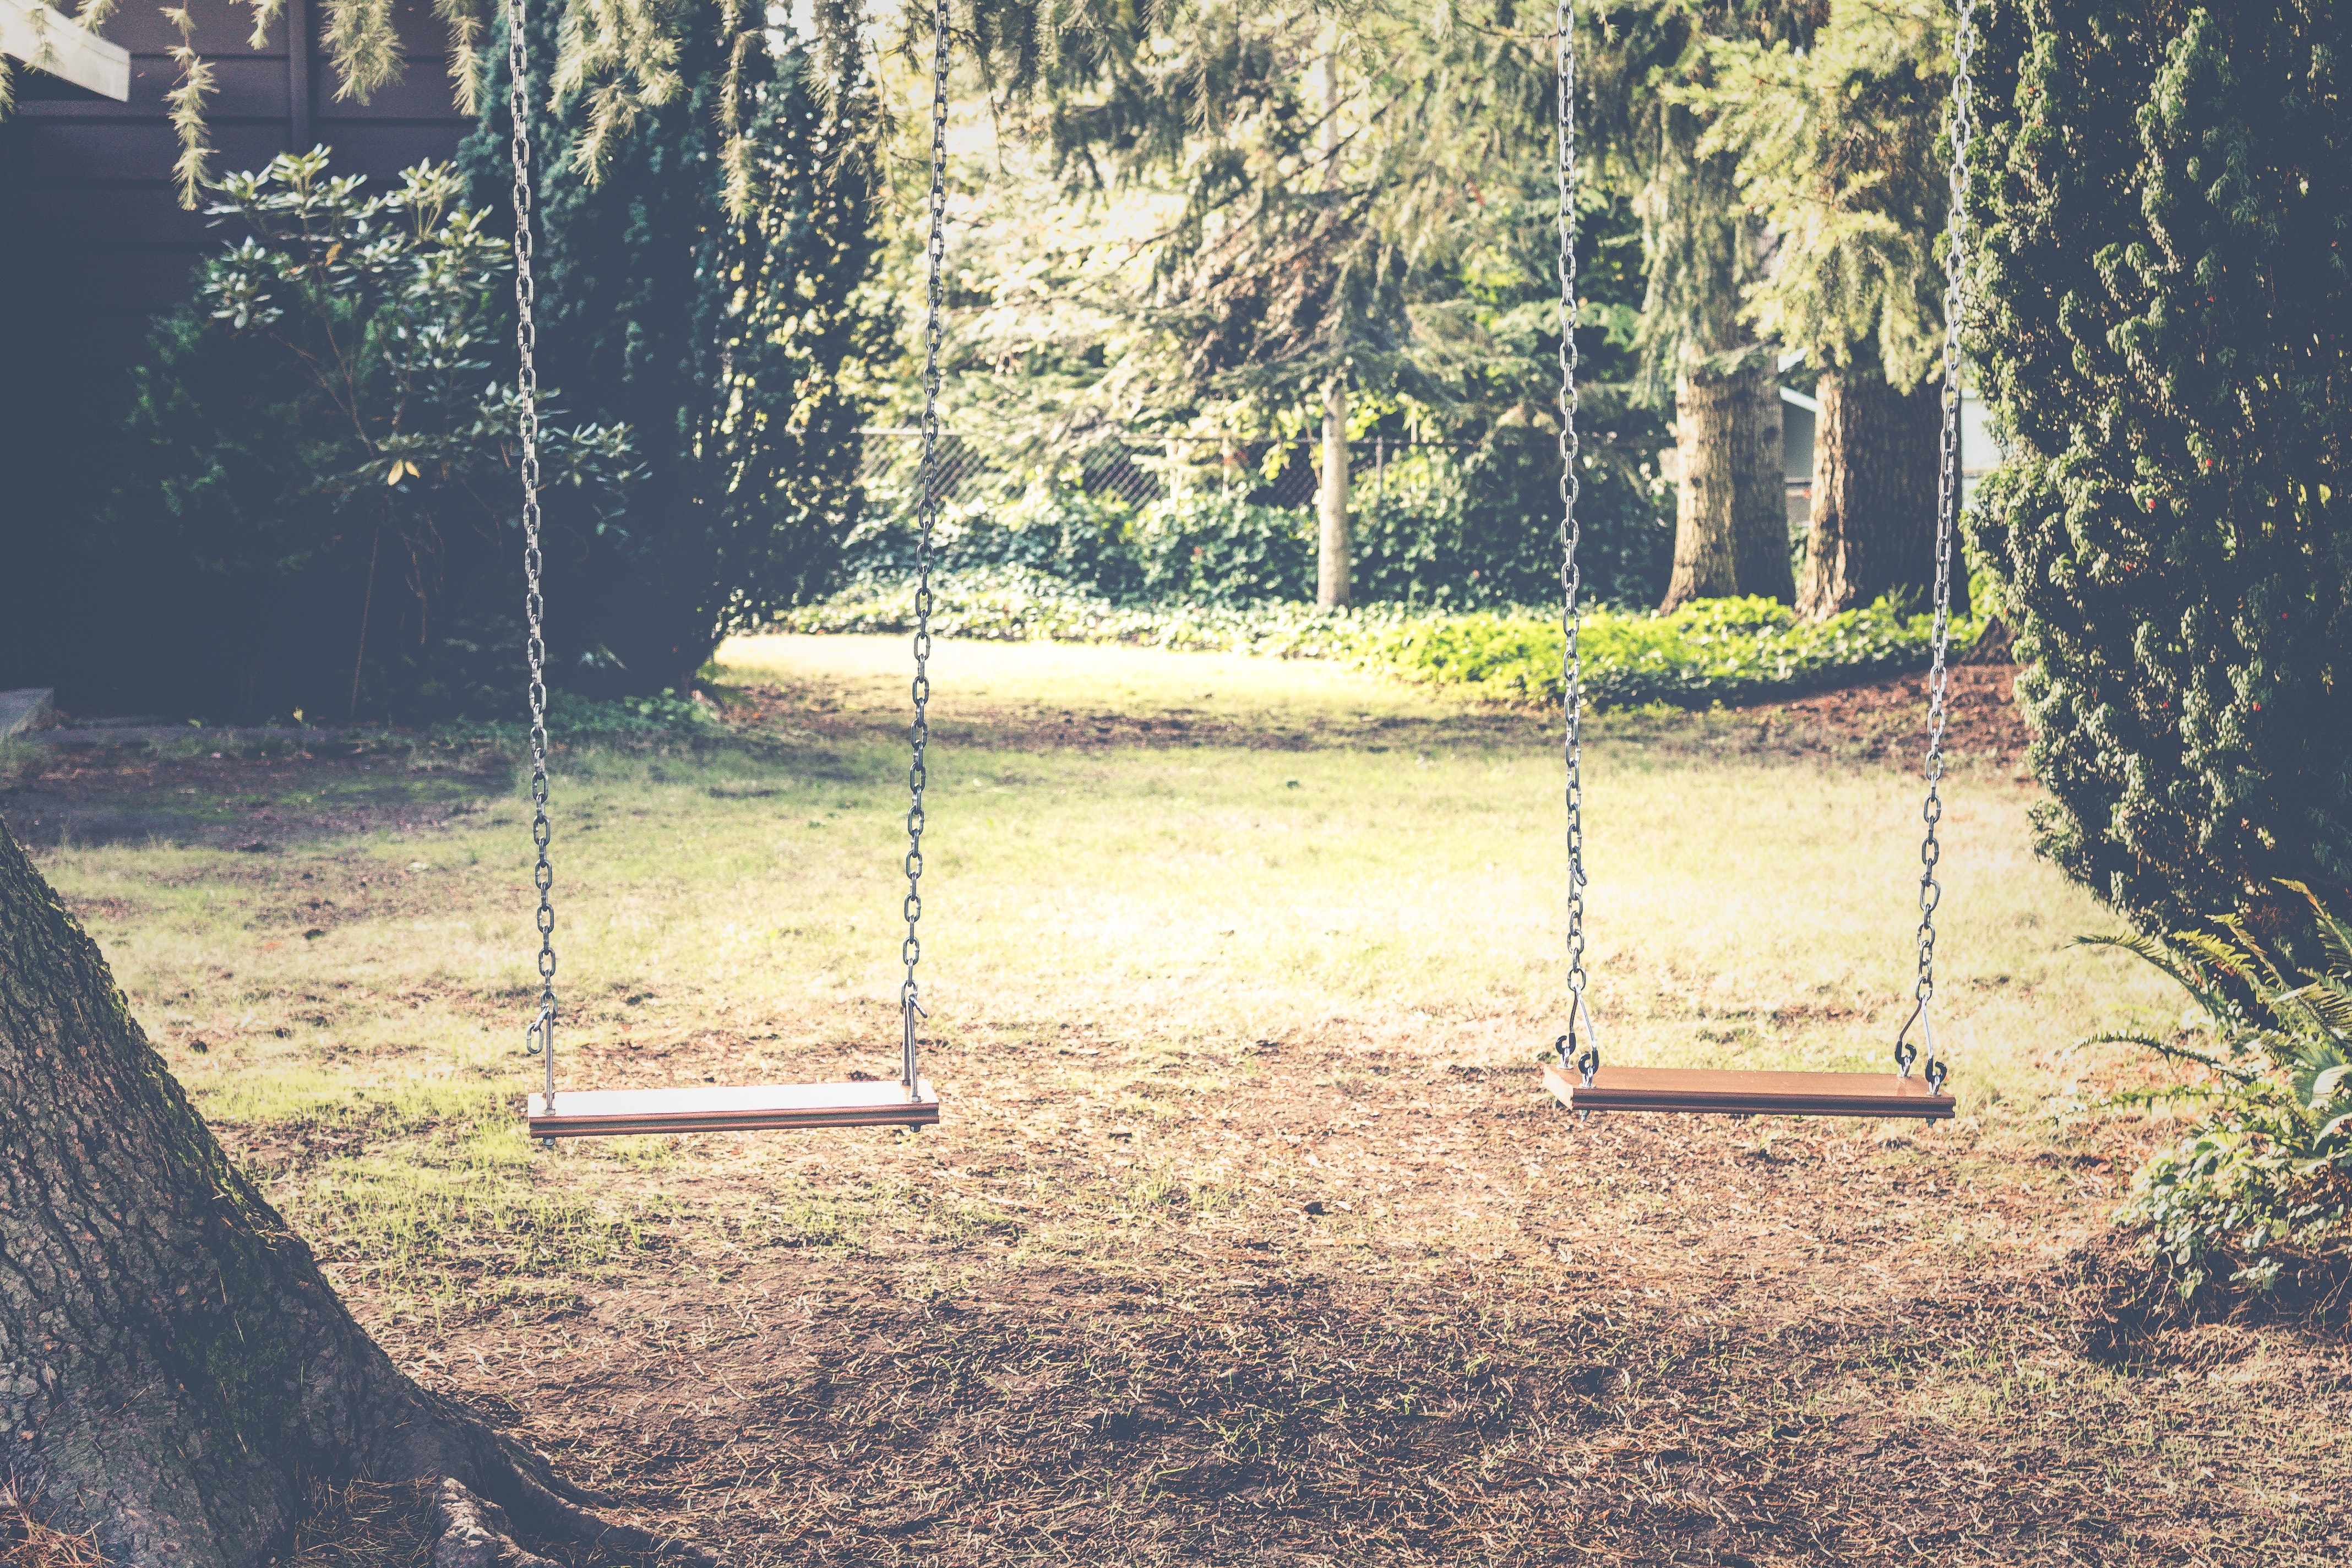 Two swings metaphor can my spouse work in Germany while I study